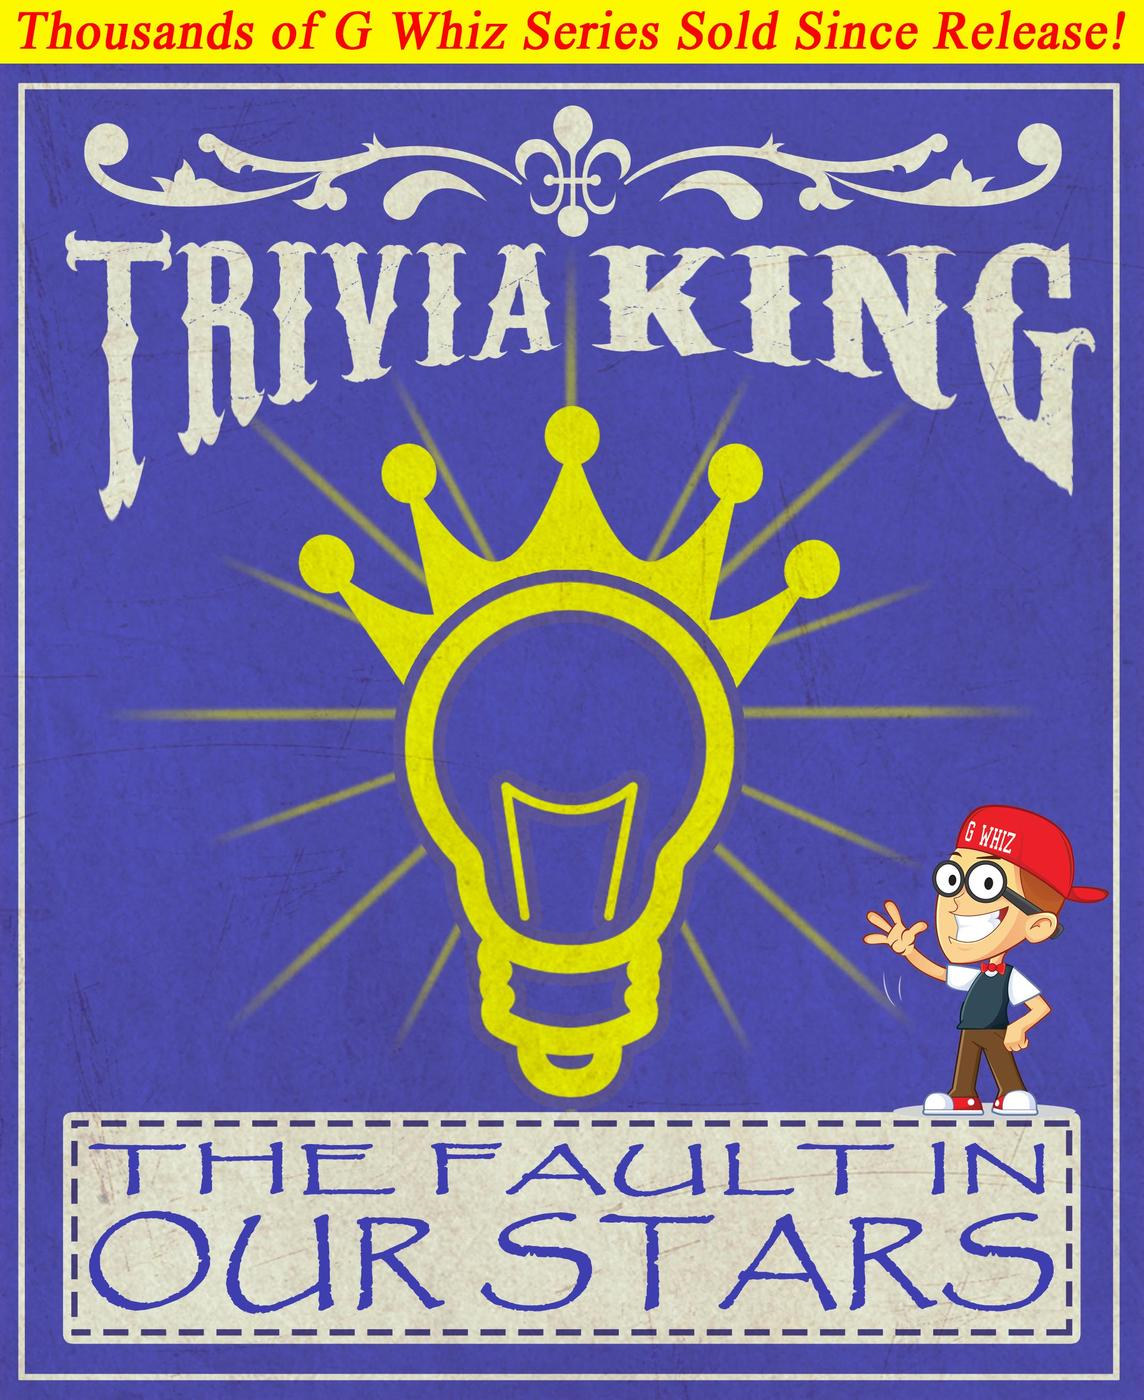 G Whiz - The Fault in Our Stars - Trivia King!